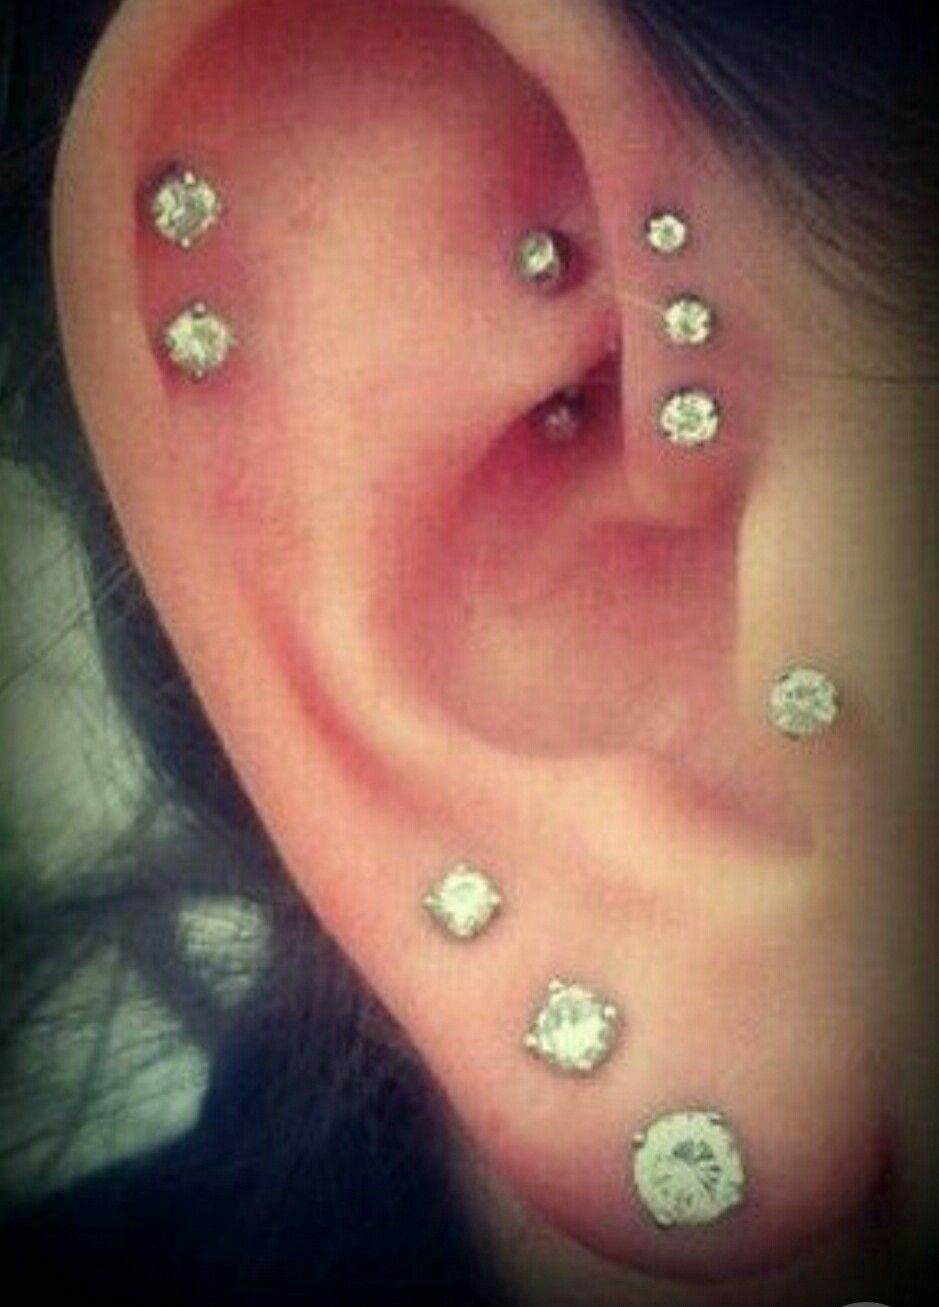 Body piercing jewelry types  Pin by Michell Ctt on jóias e acessórios  Pinterest